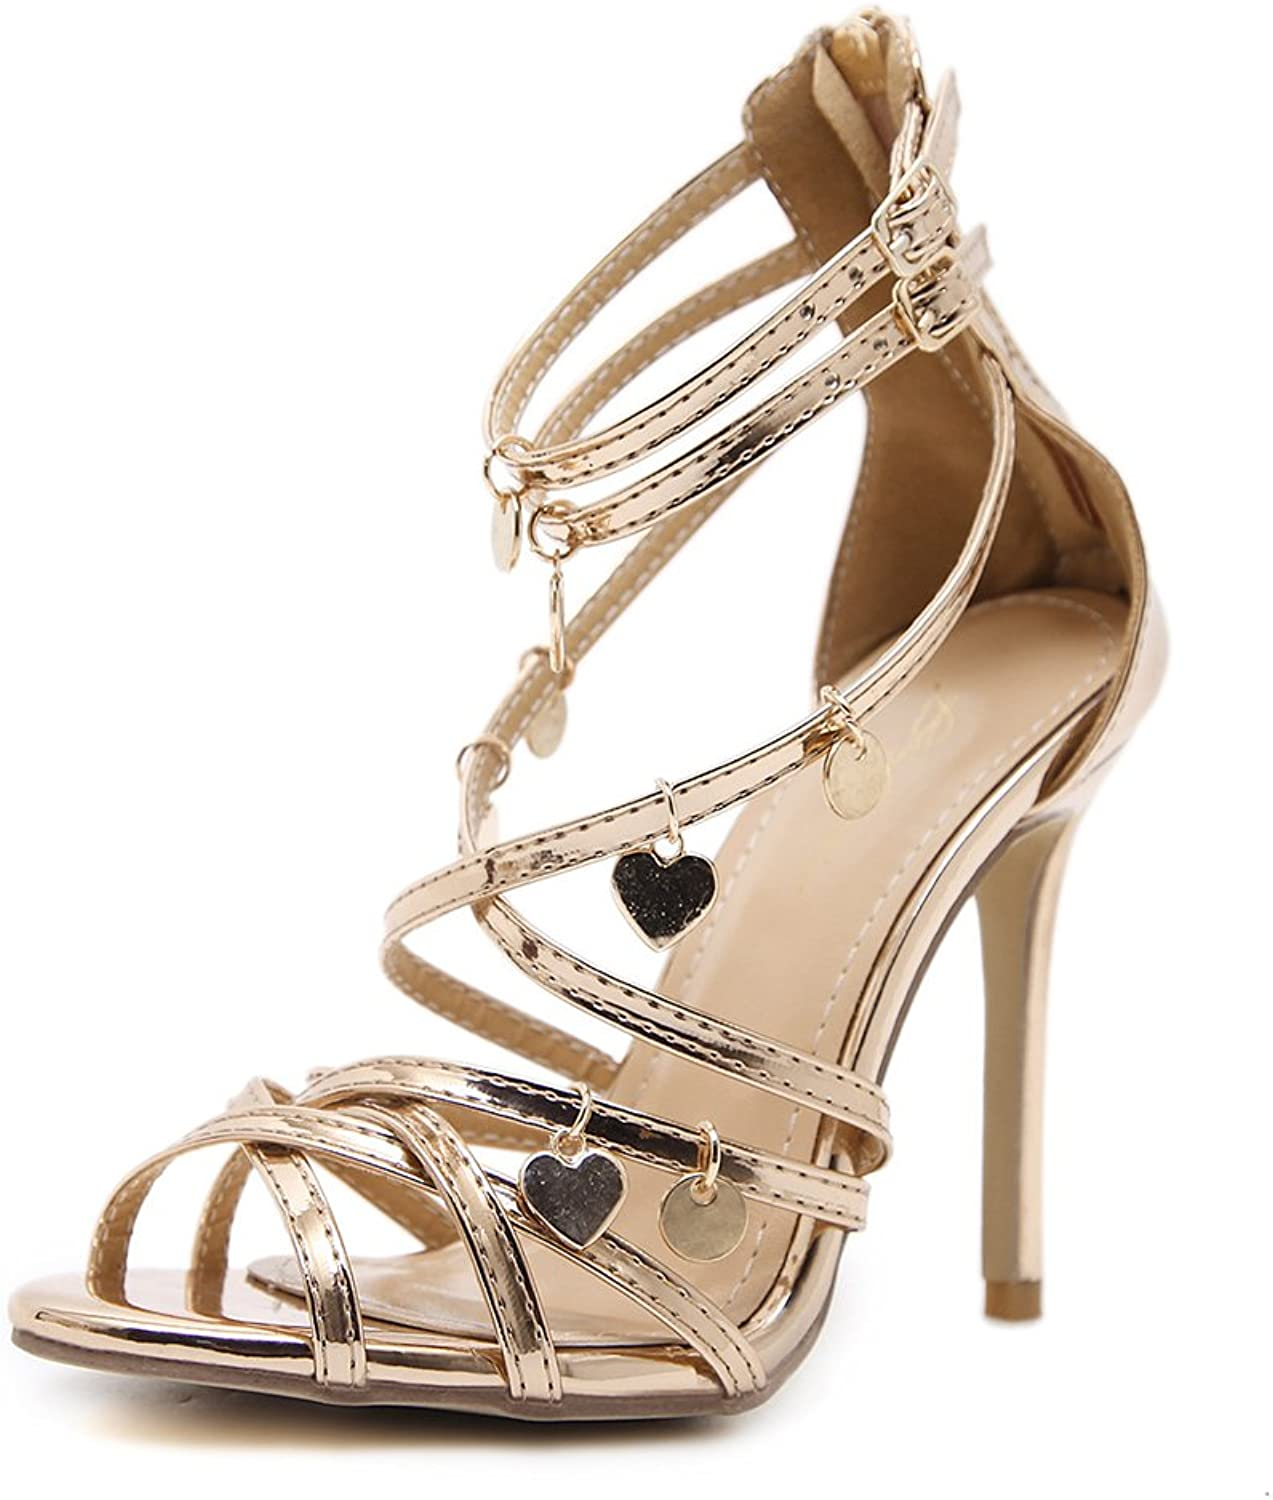 Women's Open Toe Strappy High Heel Sandals - Sexy Cross Strap Sandals Pumps - Summer Party Dress shoes